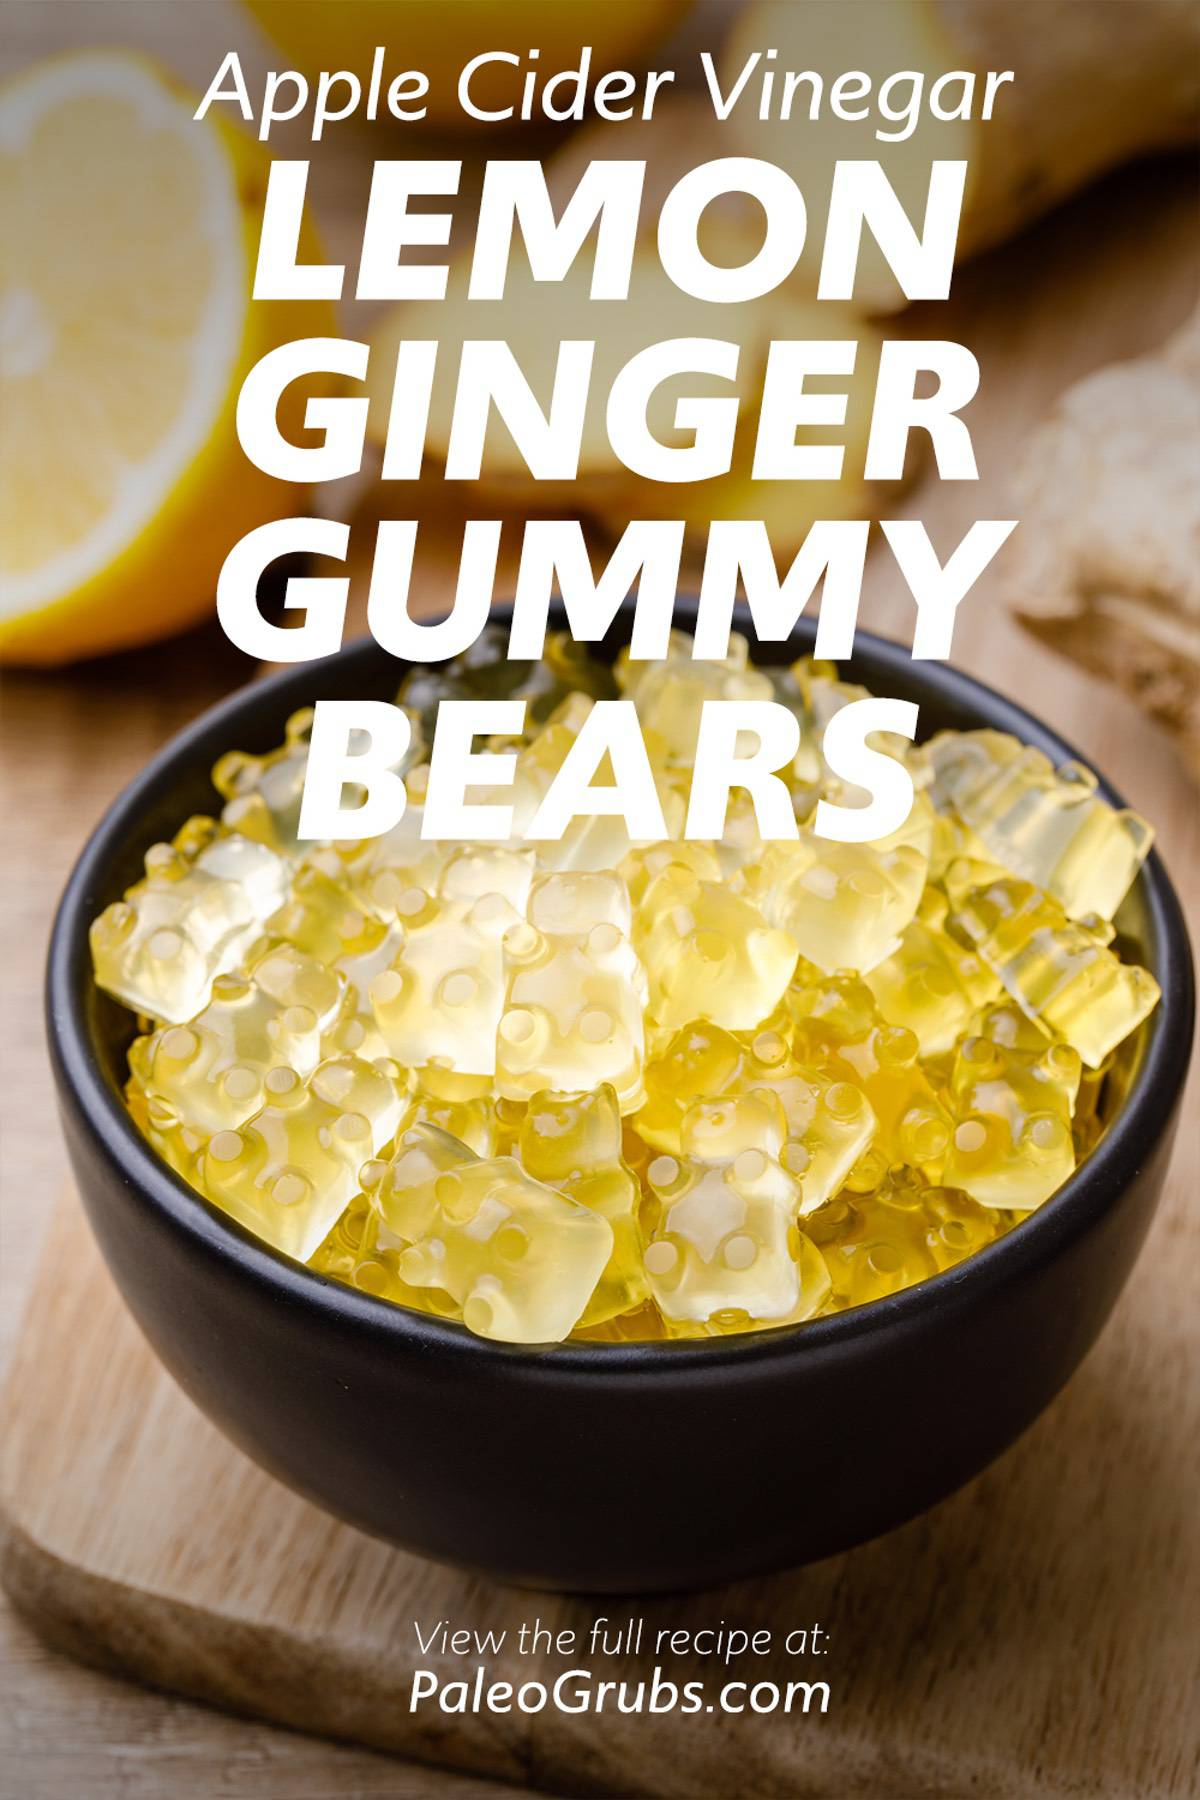 Apple Cider Vinegar, Lemon and Ginger Gummy Bears